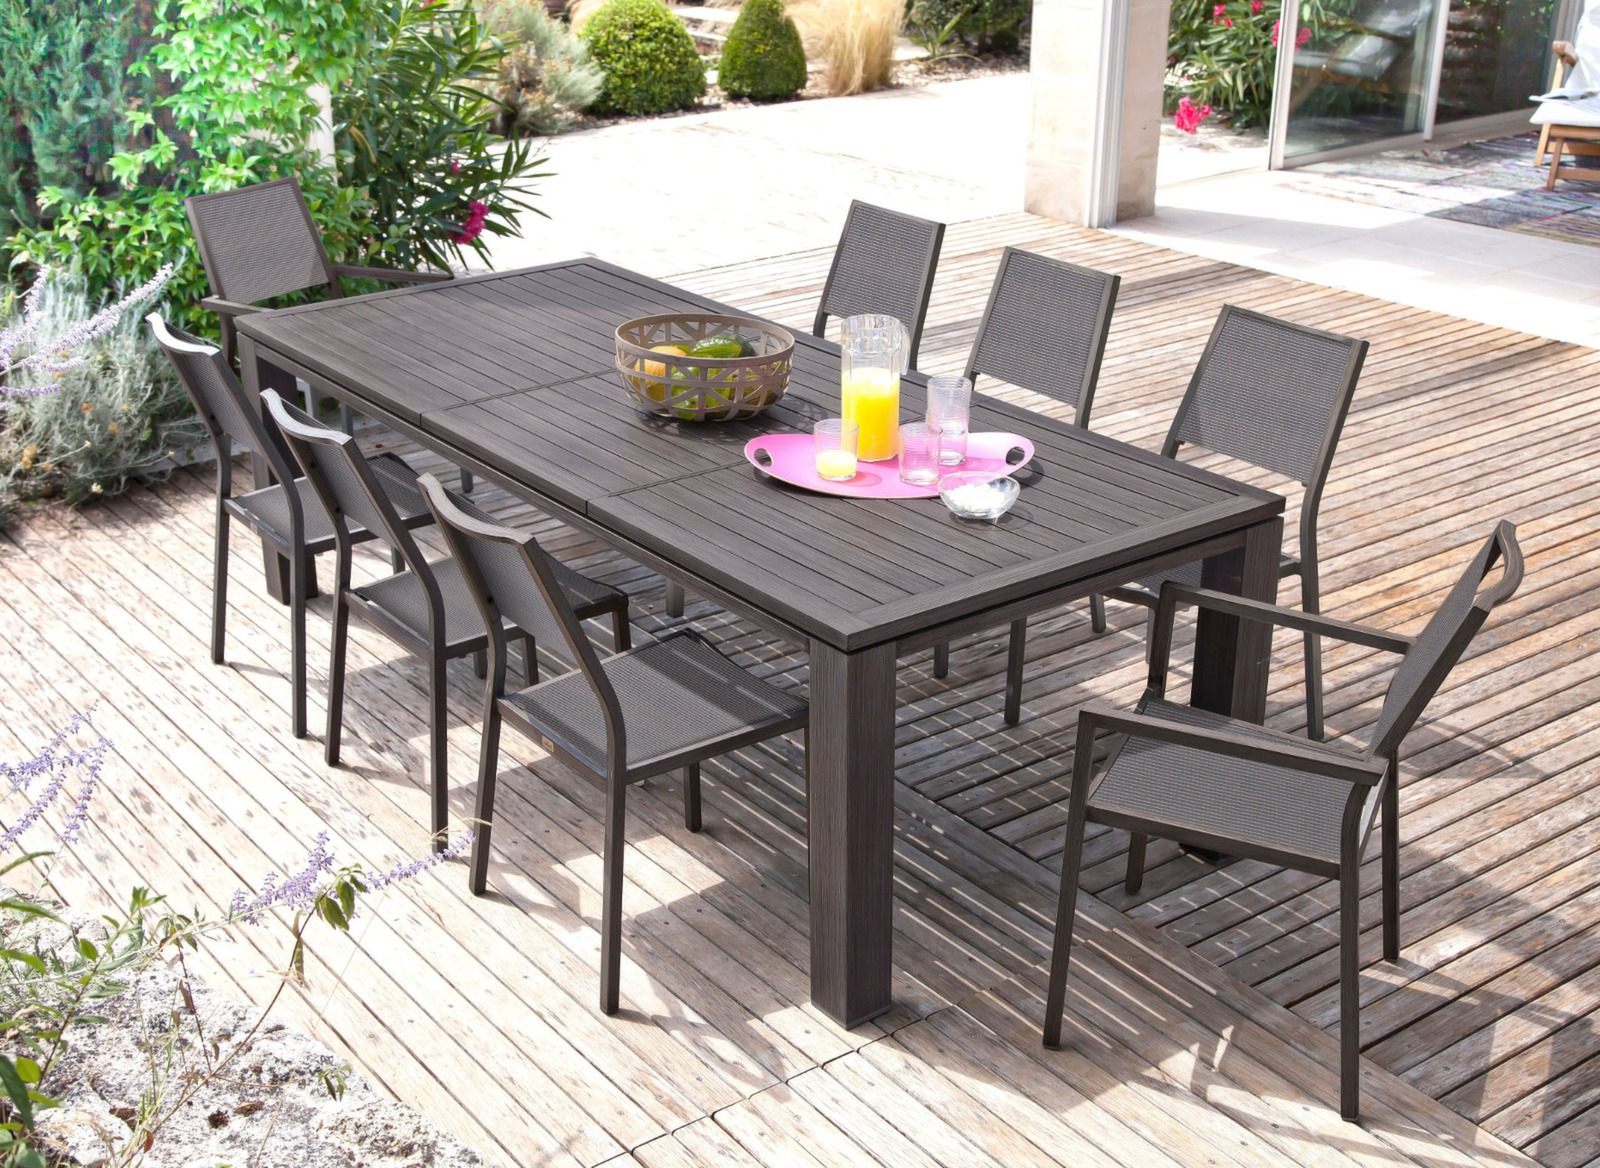 Grande table de jardin rectangle fiero proloisirs - Salon de jardin oceo aluminium fiero ...